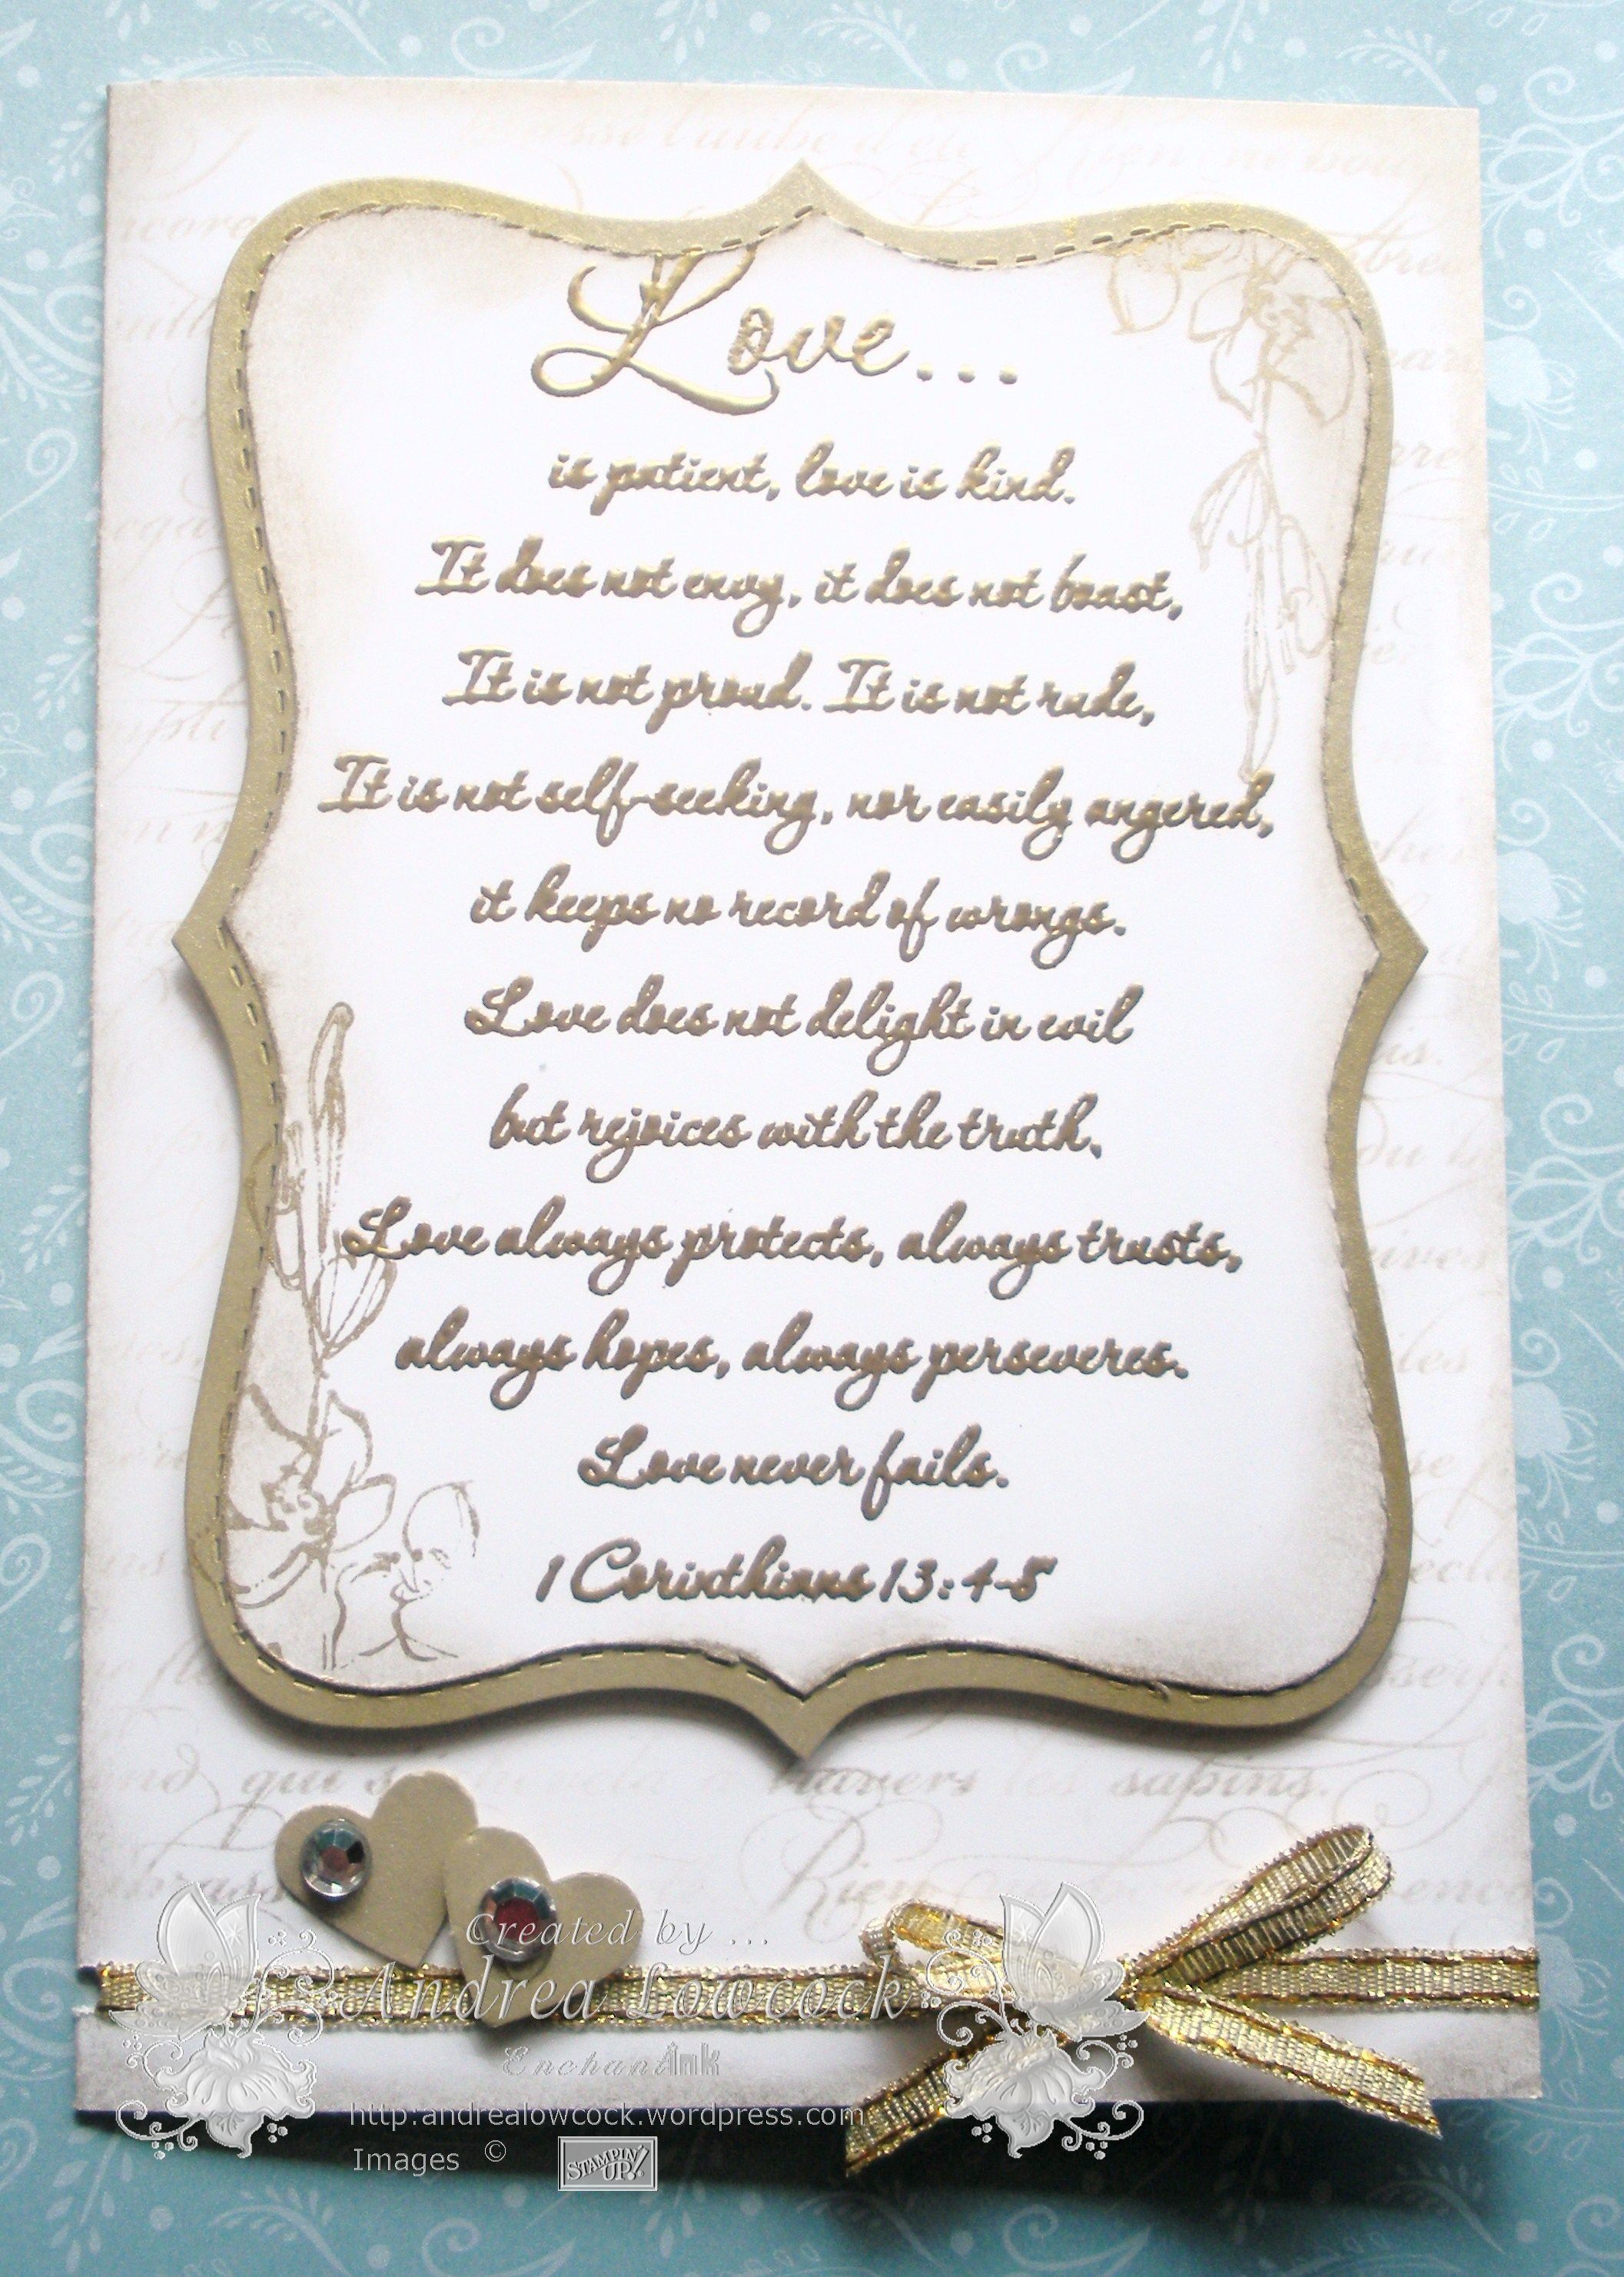 Funny Poem For Wedding Thank You Card Wedding Invitation Sample – Thank You Quotes for Wedding Cards